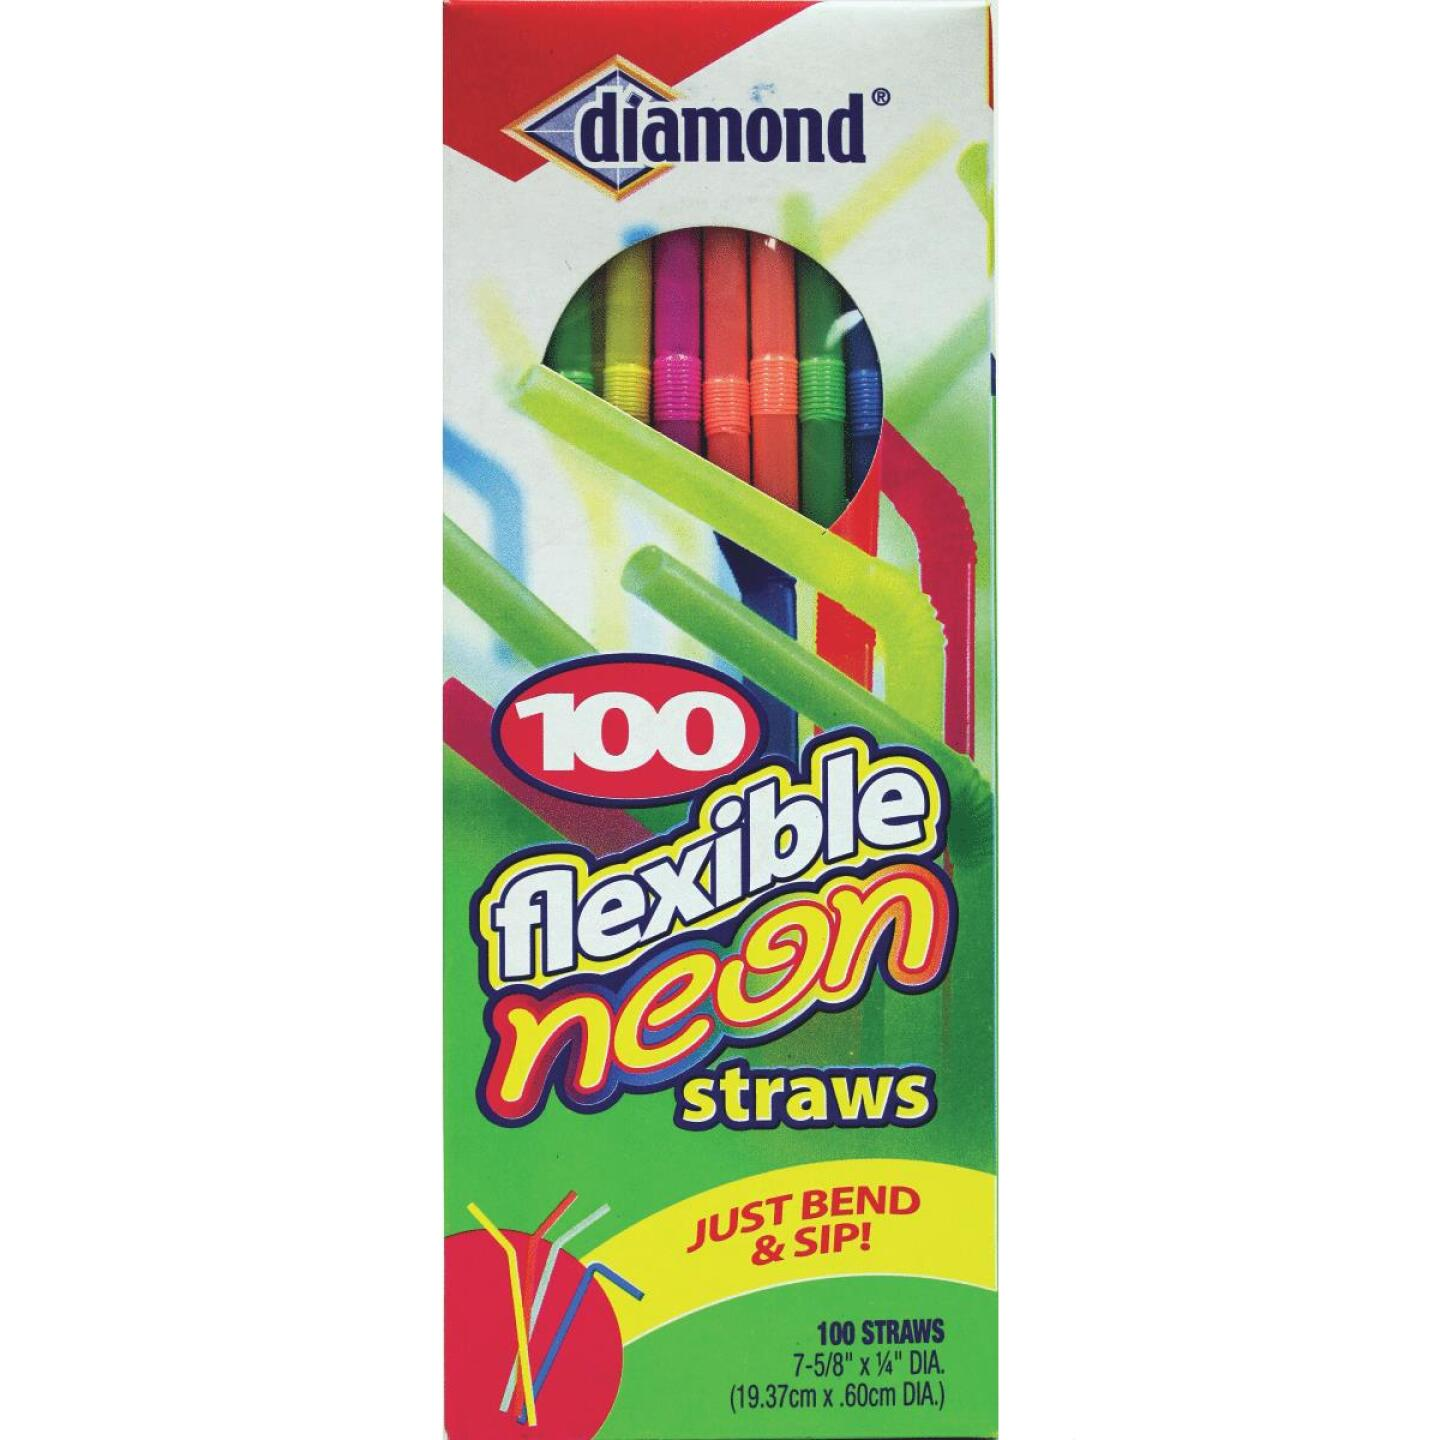 Diamond Flexible Neon Straw (100-Count) Image 1